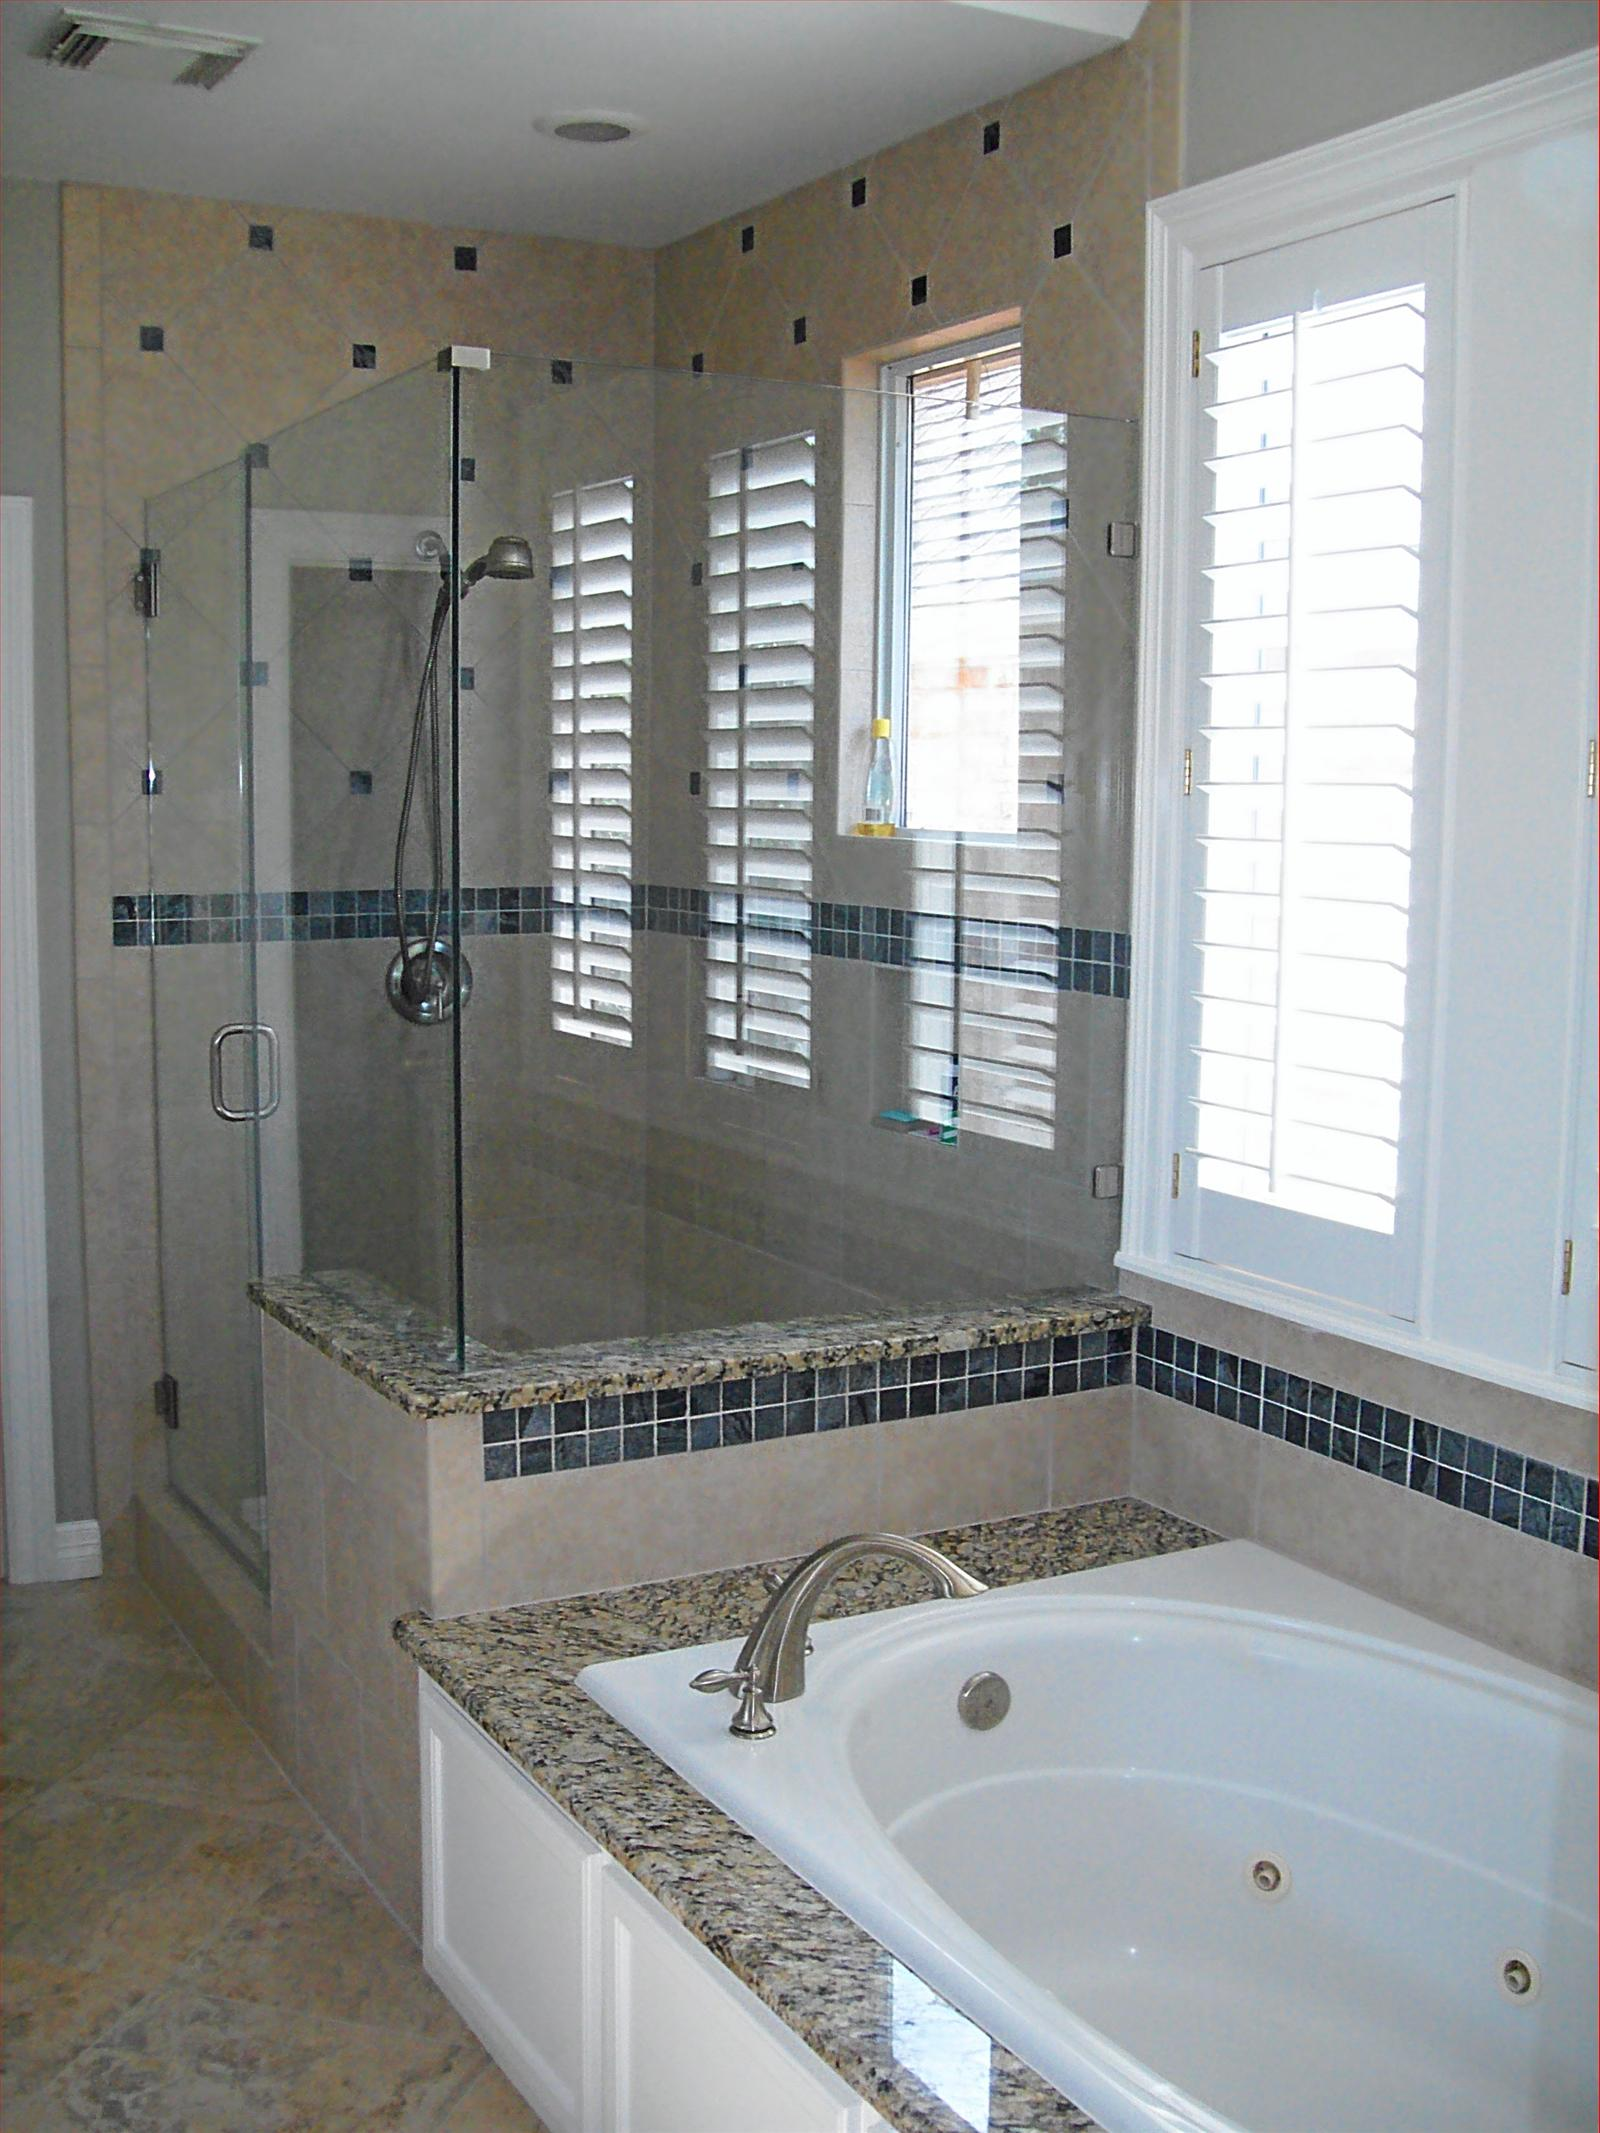 Bathroom Remodeling Katy projects tub replacement anemptytextlline full remodel